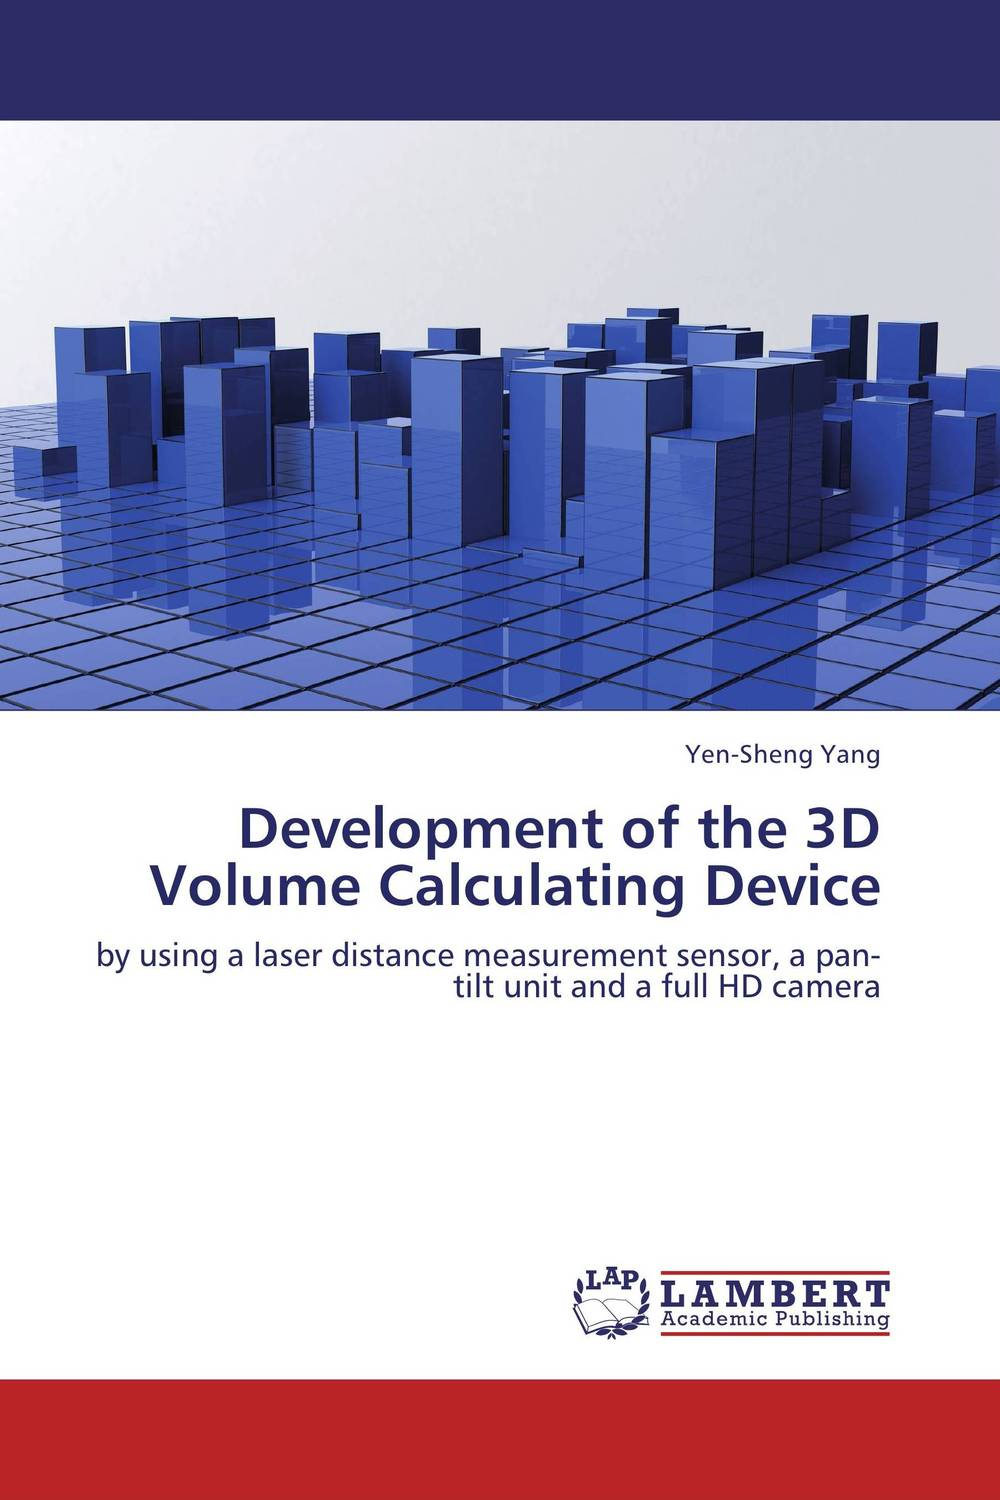 Development of the 3D Volume Calculating Device the history of england volume 3 civil war